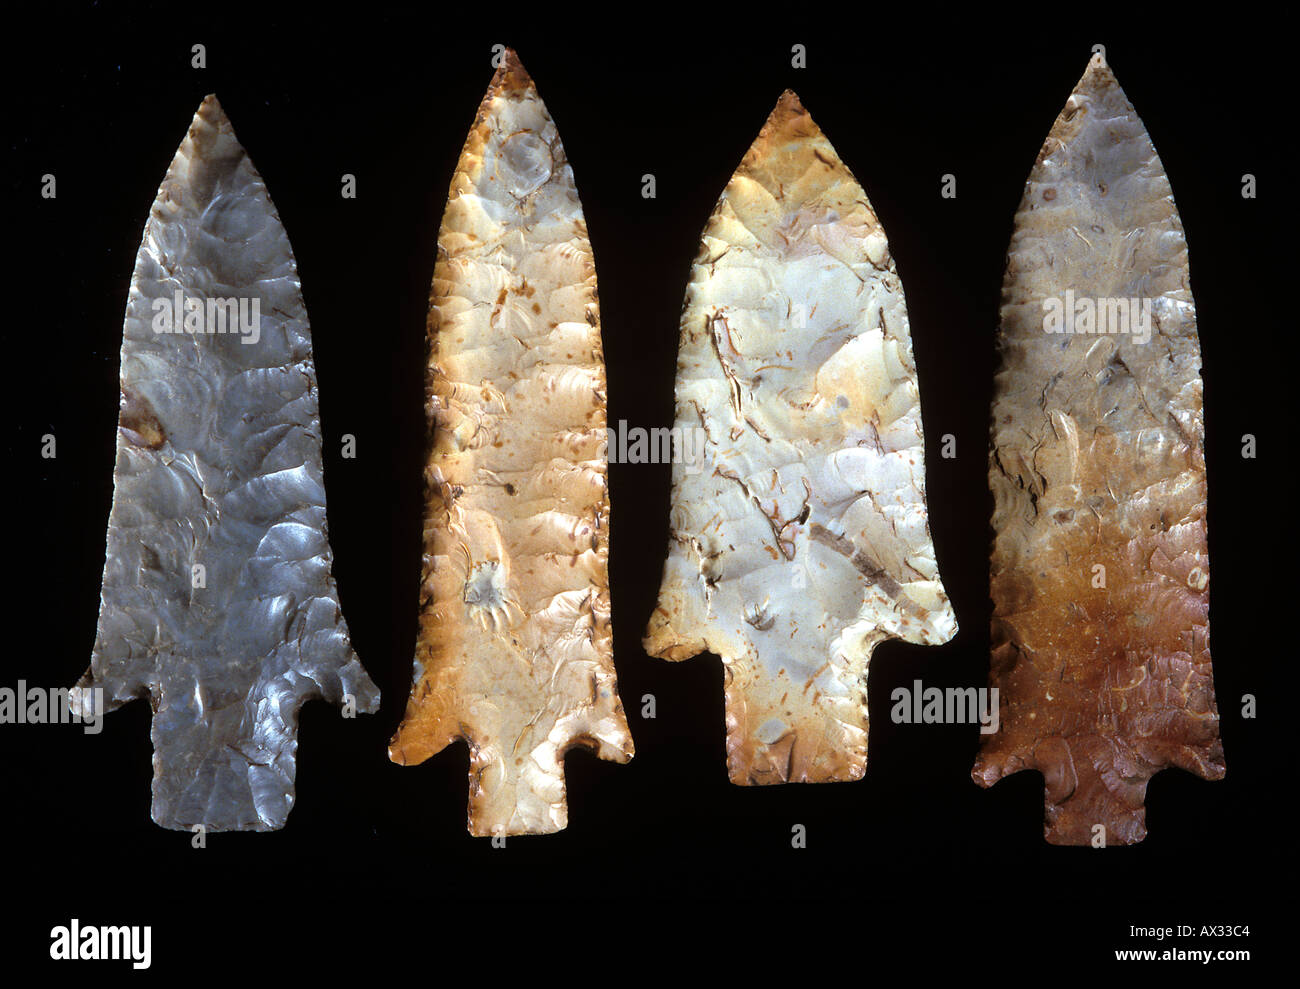 Spear Points, characteristically-fluted projectile points, from the Late Archaic period (4,000 BC), found near St. Louis, Missouri - Stock Image